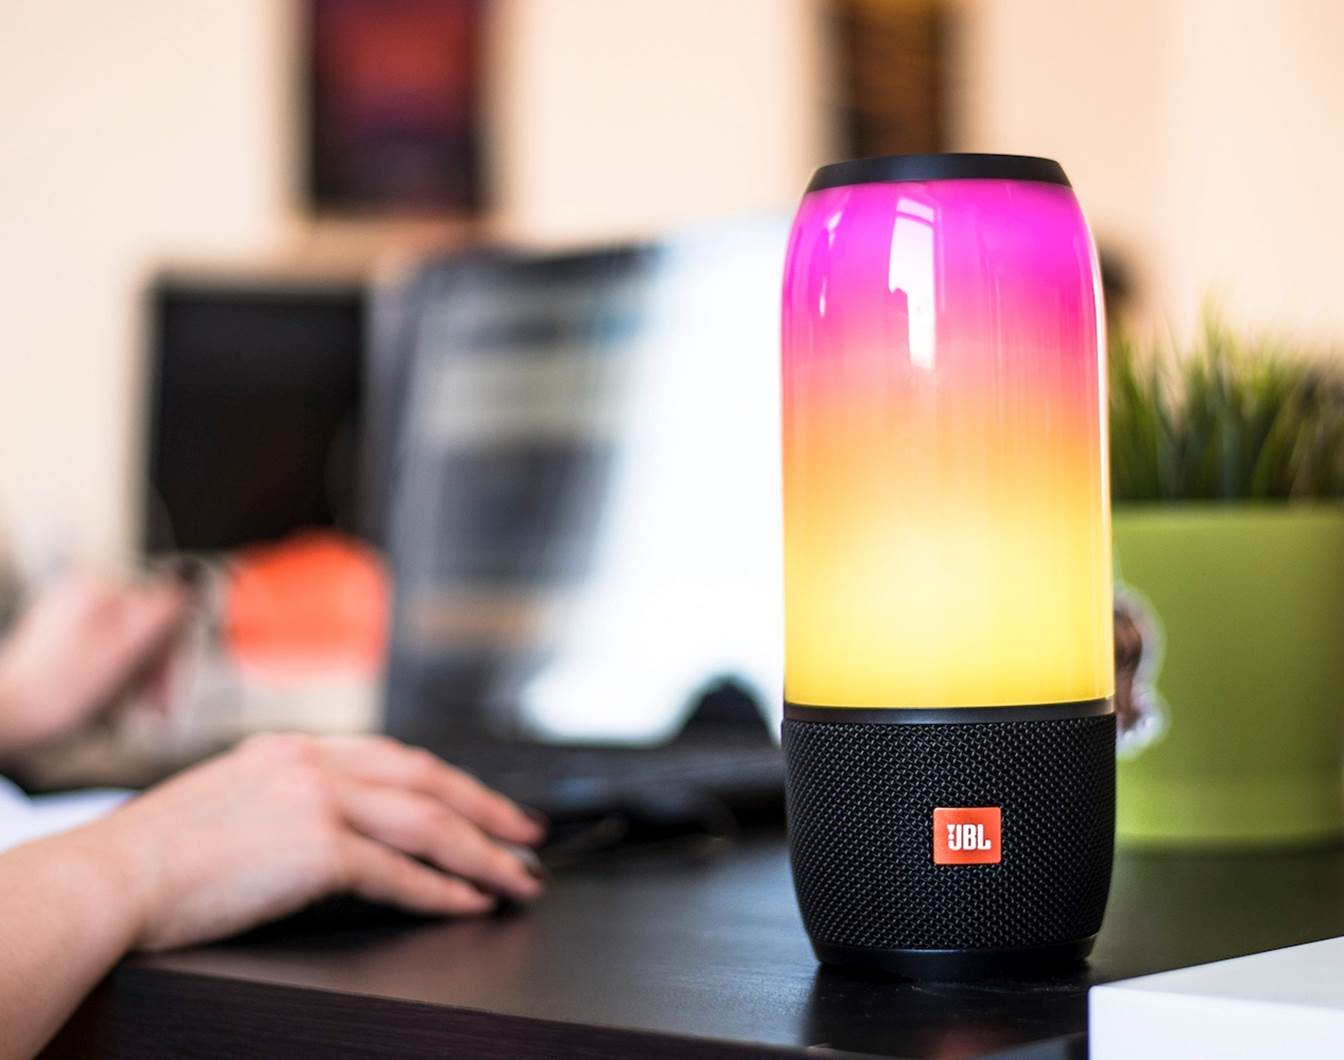 JBL Pulse 3 LED Bluetooth Speaker with Lights